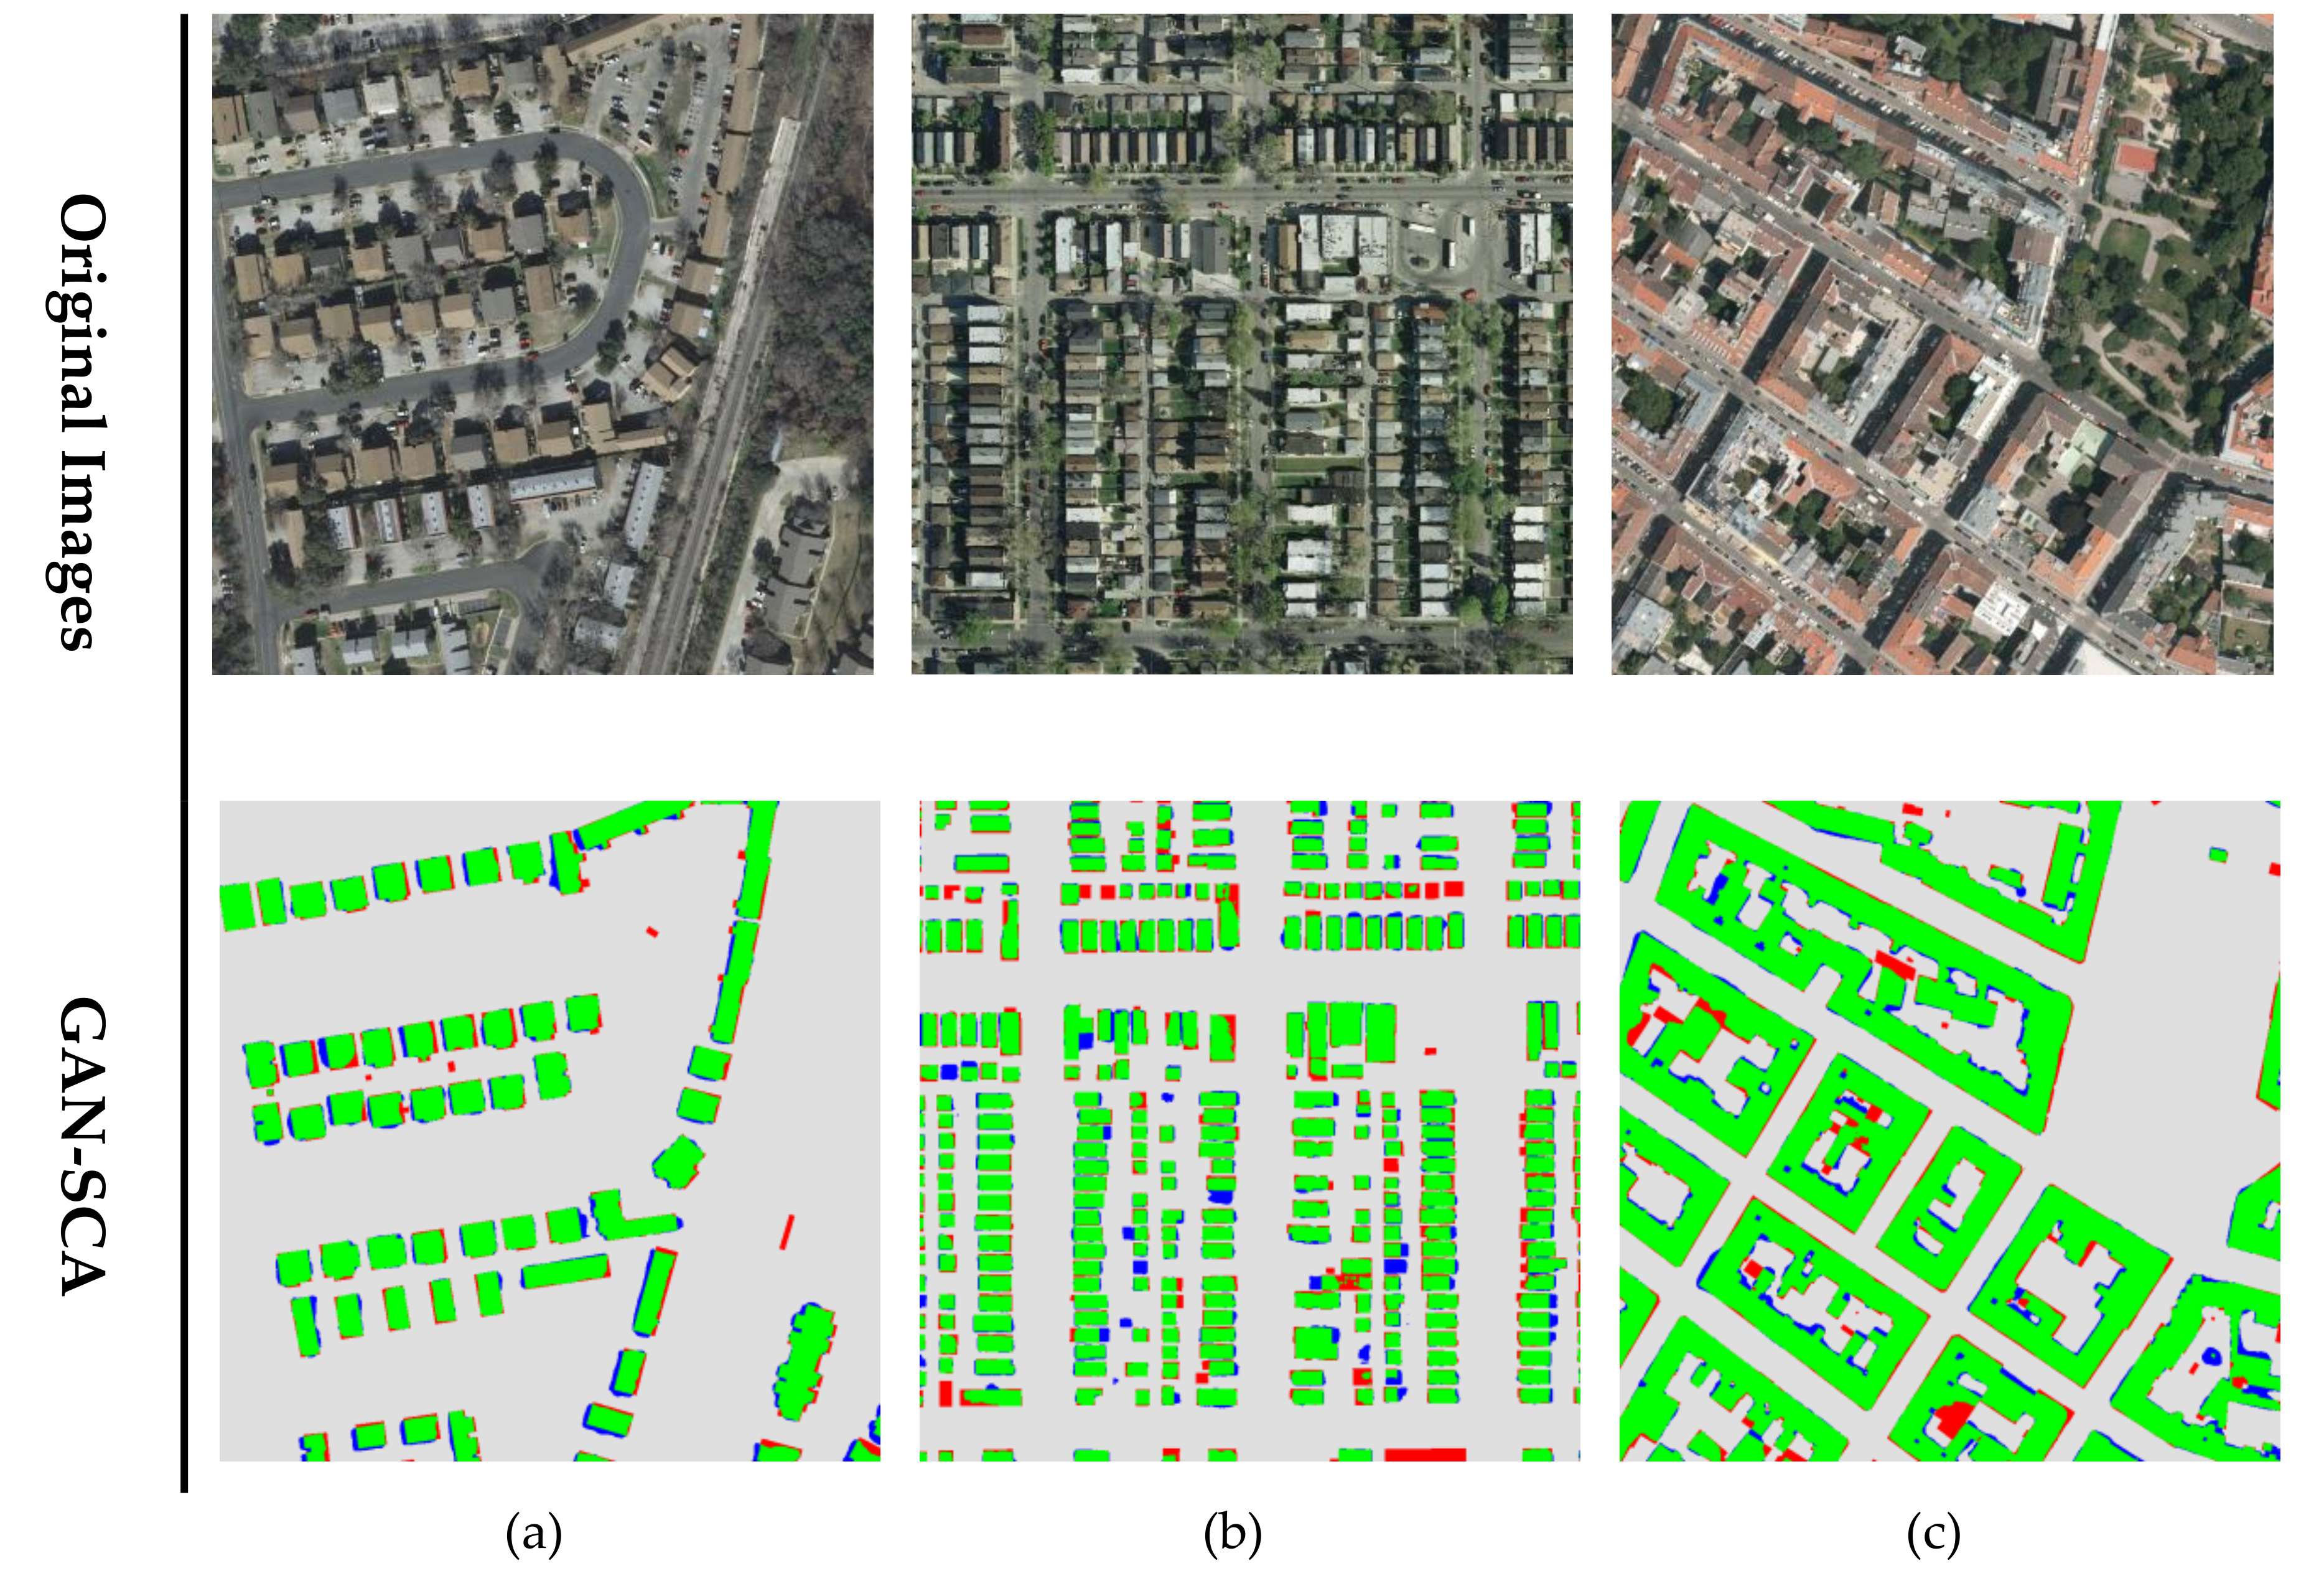 Remote Sensing | Free Full-Text | Building Extraction from